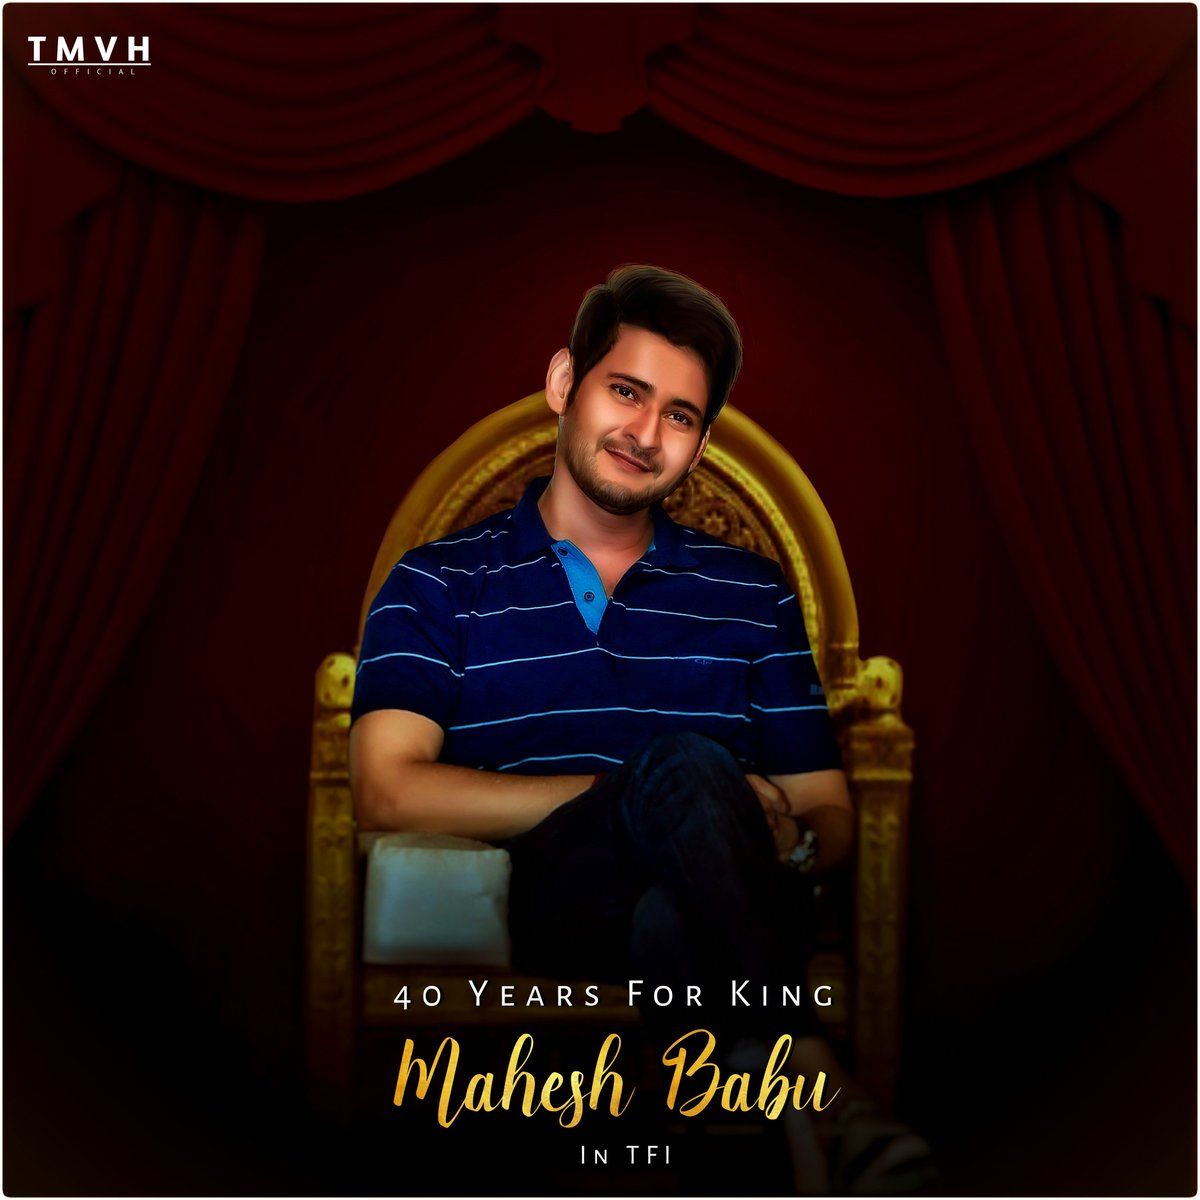 Wishing Superstar @urstrulyMahesh for 40 years in TFI.Started as a child artist in Needa to become one of biggest star Superstar has given us many memories,cult classics.Adopted 2  villages,Helped many children for operations.  #ssmbreignbeginssoon #MaheshBabu #SarileruNeekevaru<br>http://pic.twitter.com/lkSMbCdv5Z